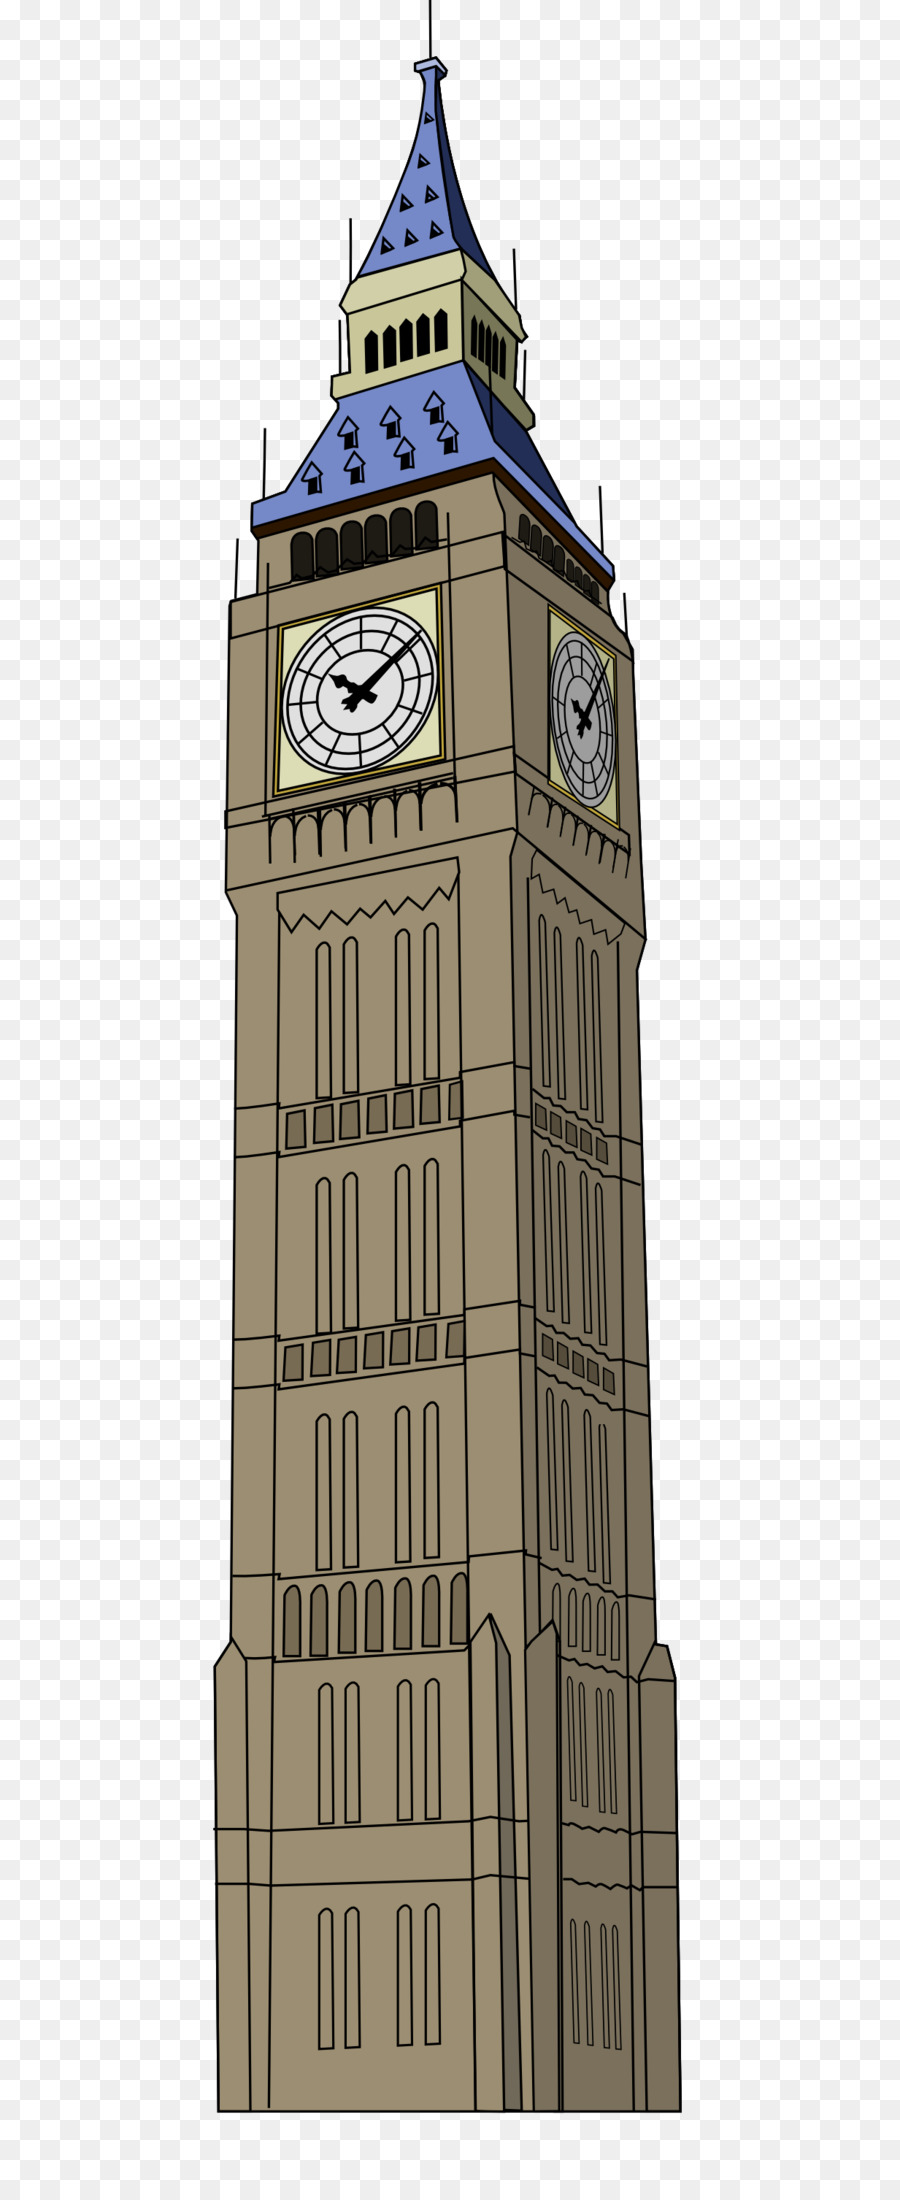 Tower of london clipart with translucent background svg library download London Cartoon png download - 1233*3000 - Free Transparent ... svg library download